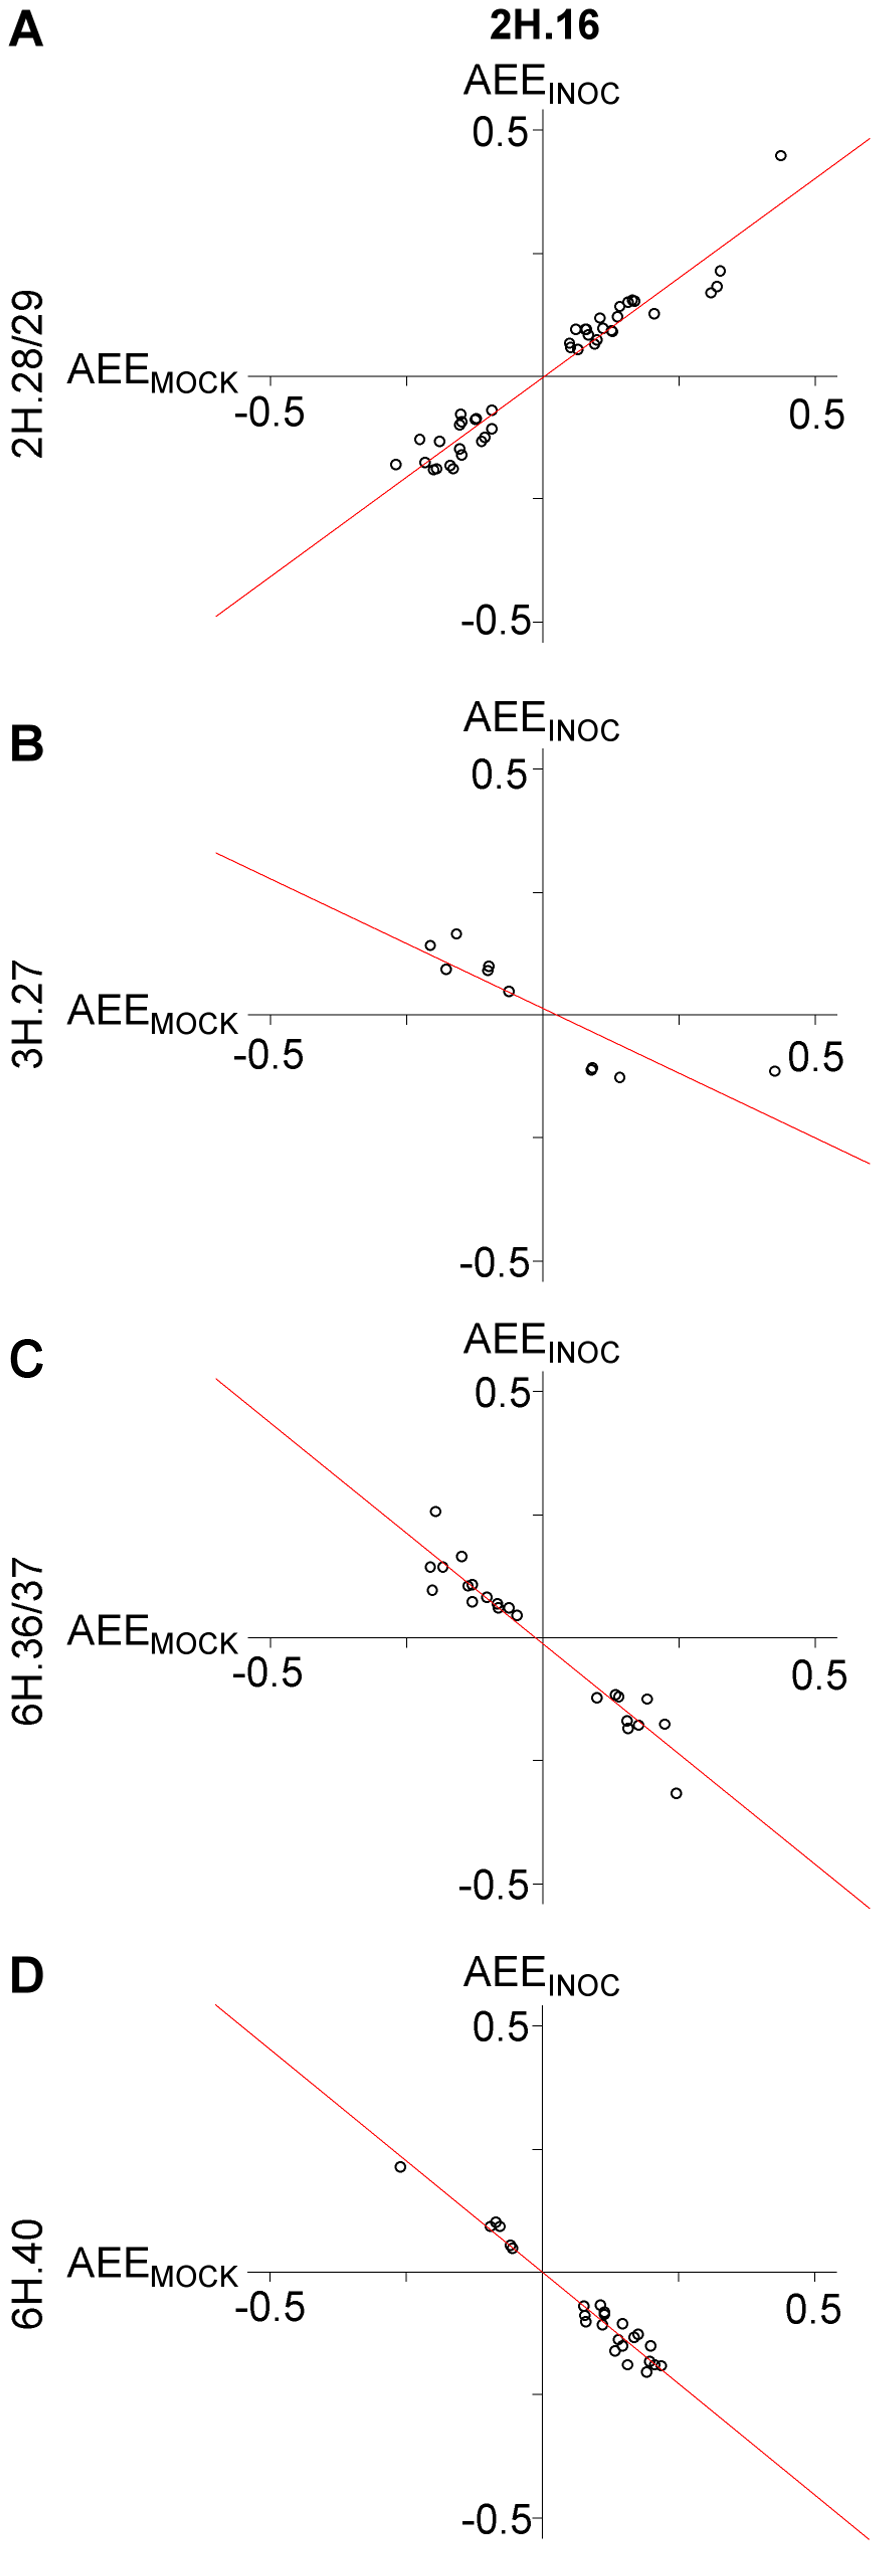 Allelic effects in gene expression are predictive between INOC and MOCK treatments by distinct loci.